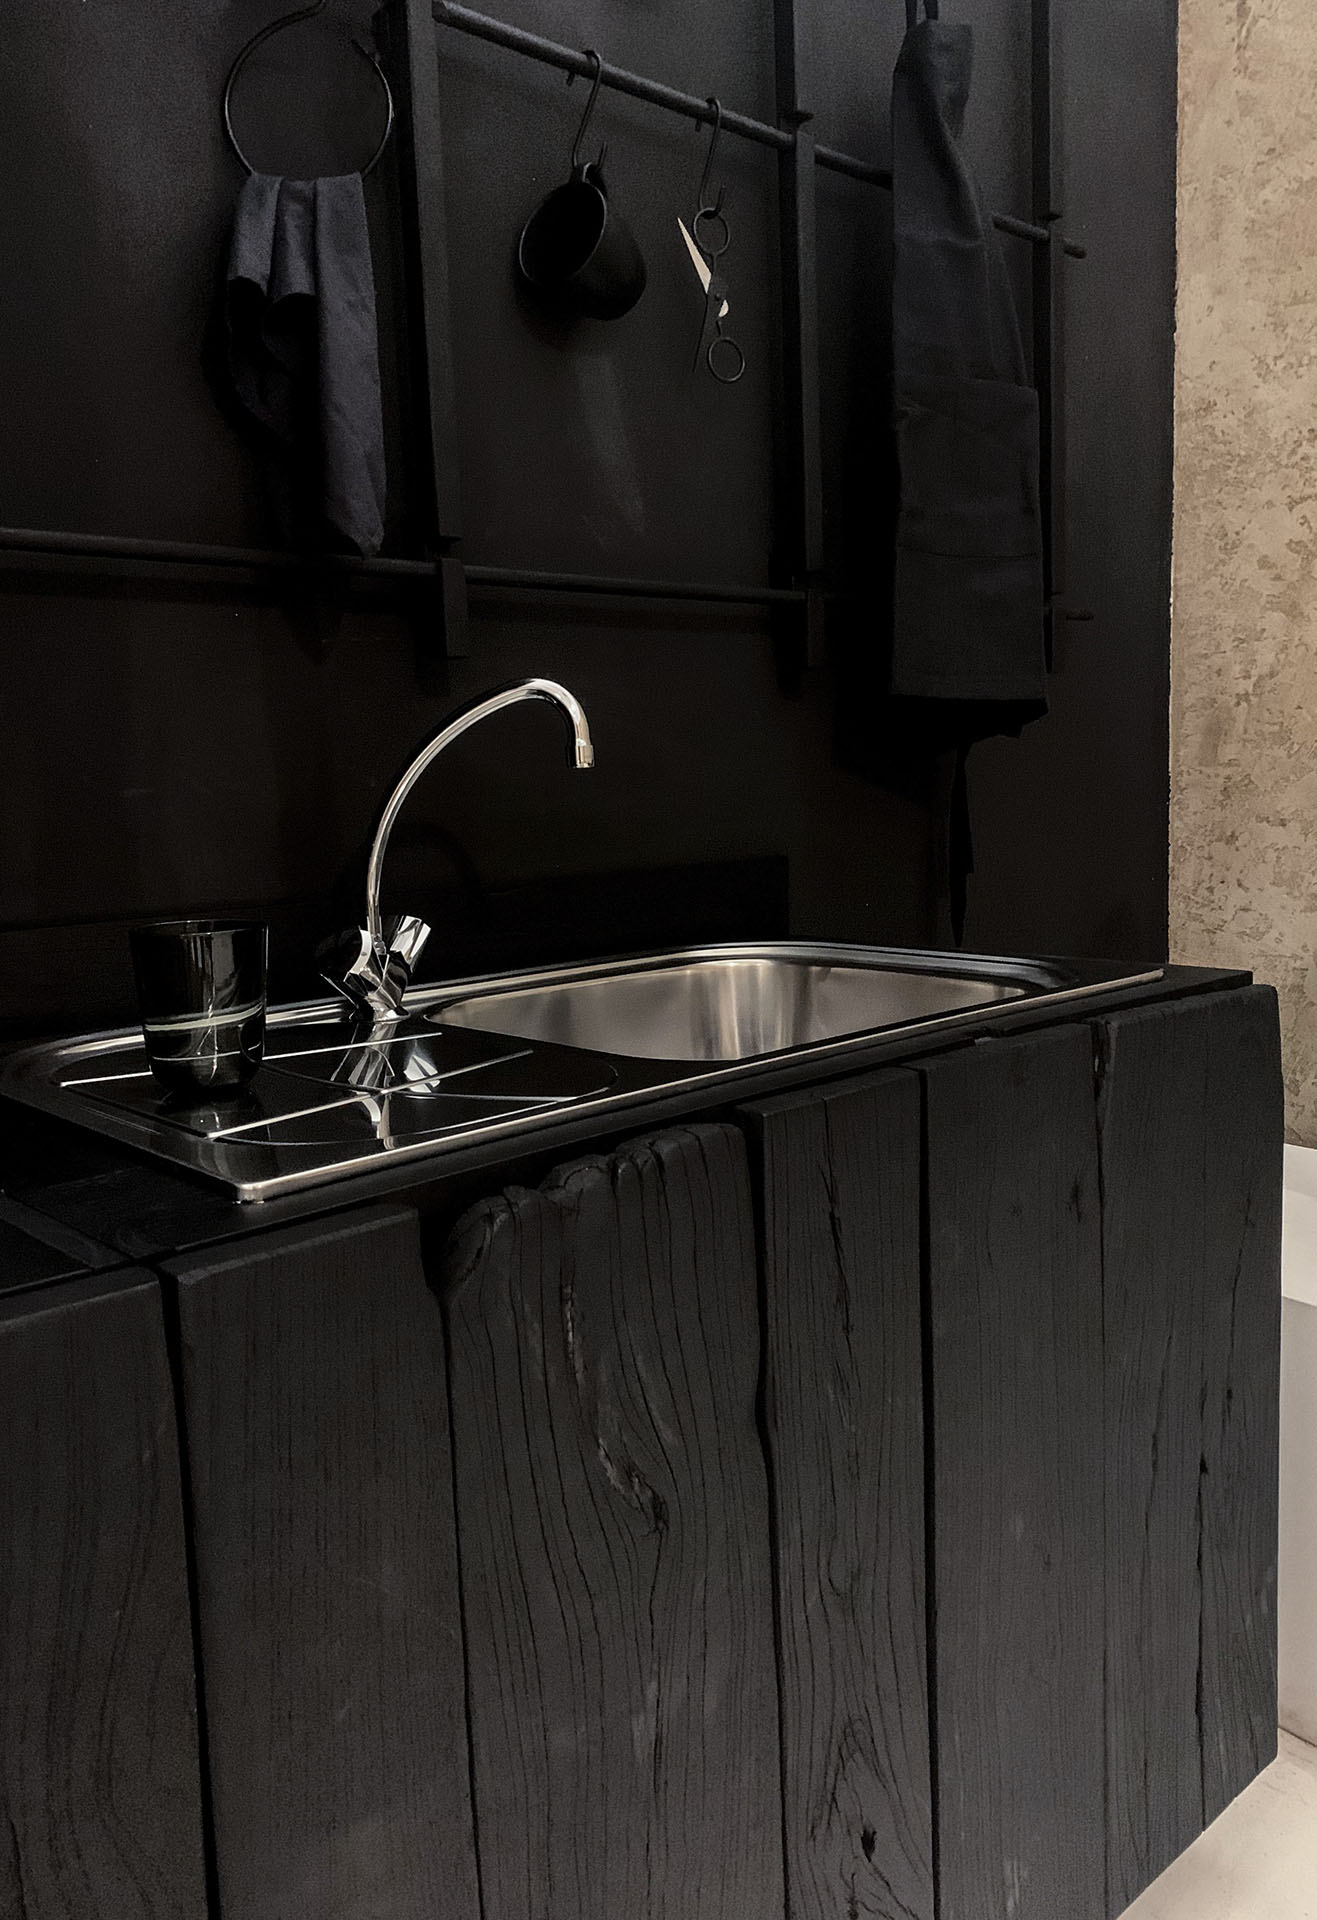 cabinet doors from wabu kitchen design made of charred reclaimed wood